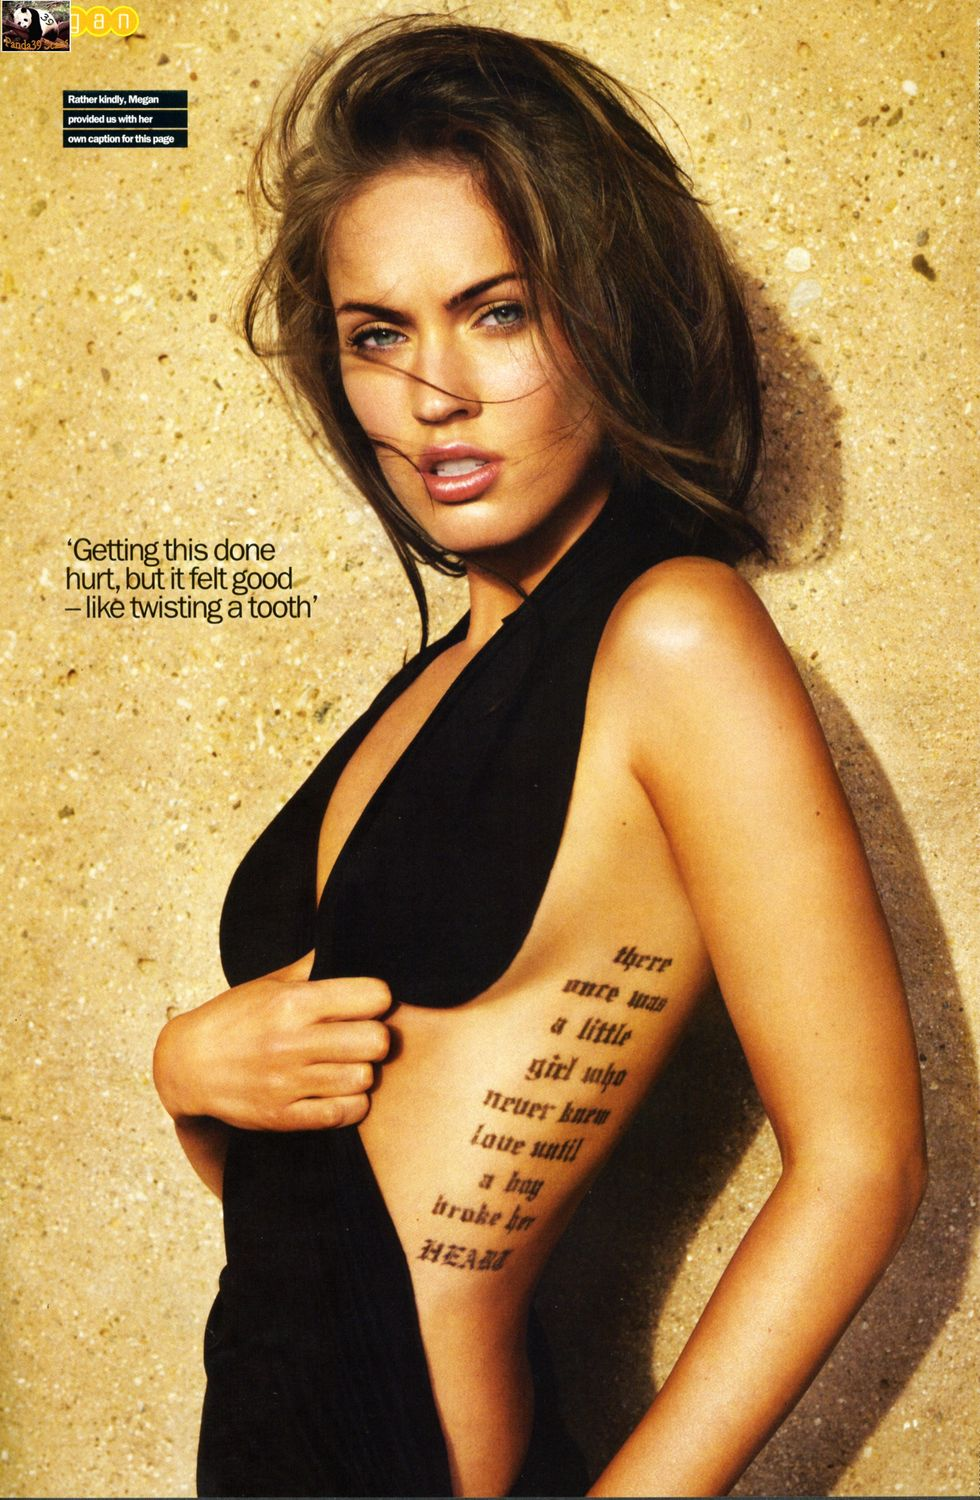 megan-fox-maxim-magazine-february-2008-01